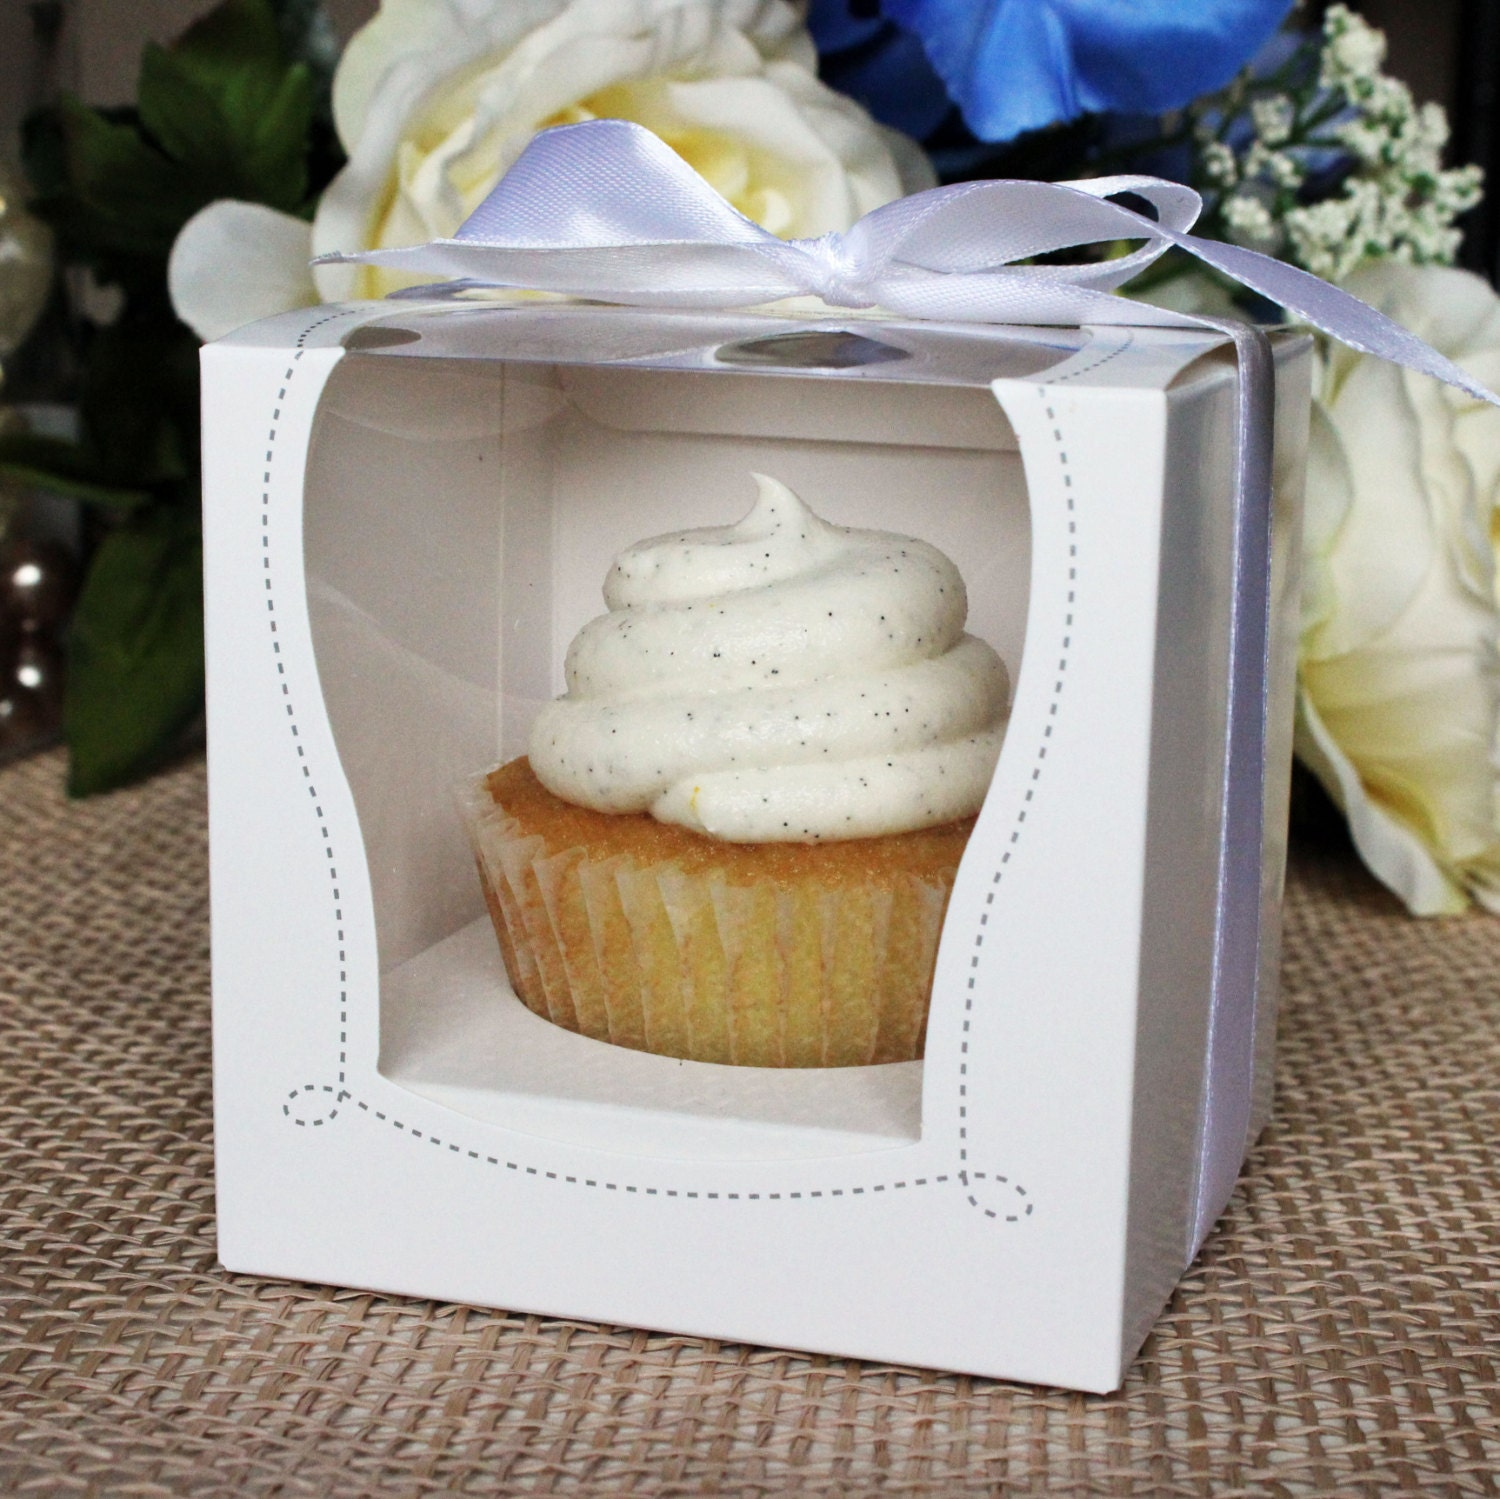 White Cupcake Muffin Cake Boxes Party Shower Favor Gift